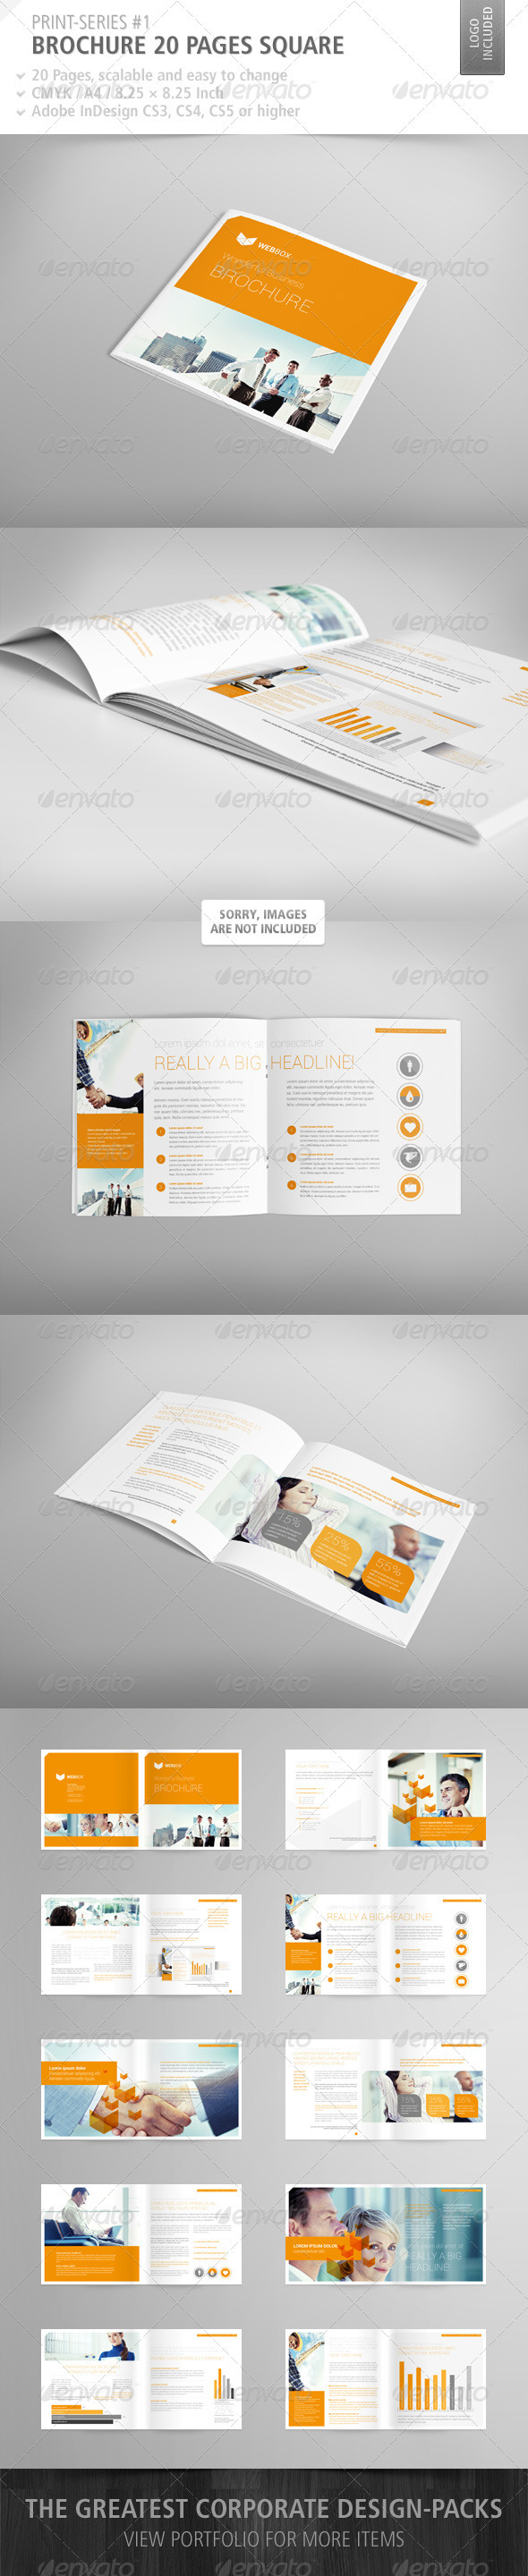 GraphicRiver Brochure Square 20 Pages Print-Series #1 3840118